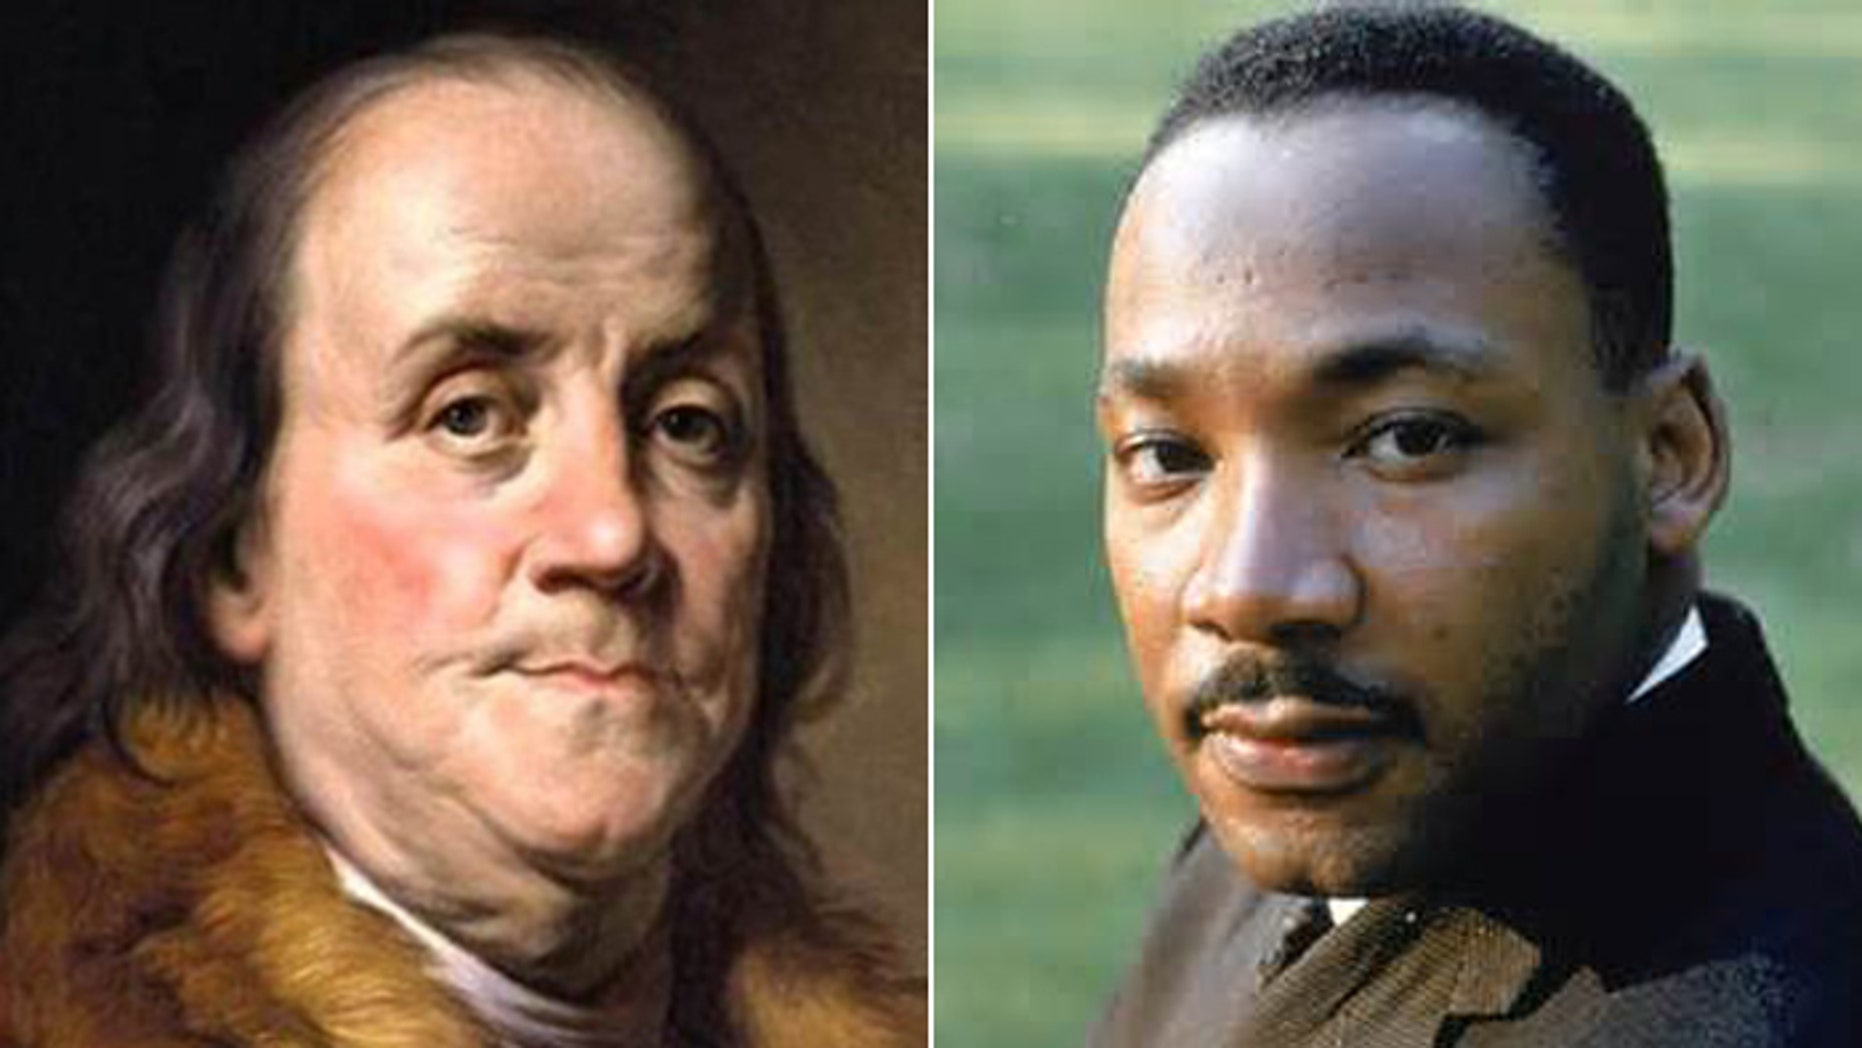 Neither Ben Franklin nor Martin Luther King Jr. make an appearance in the College Board's AP US History guidelines.